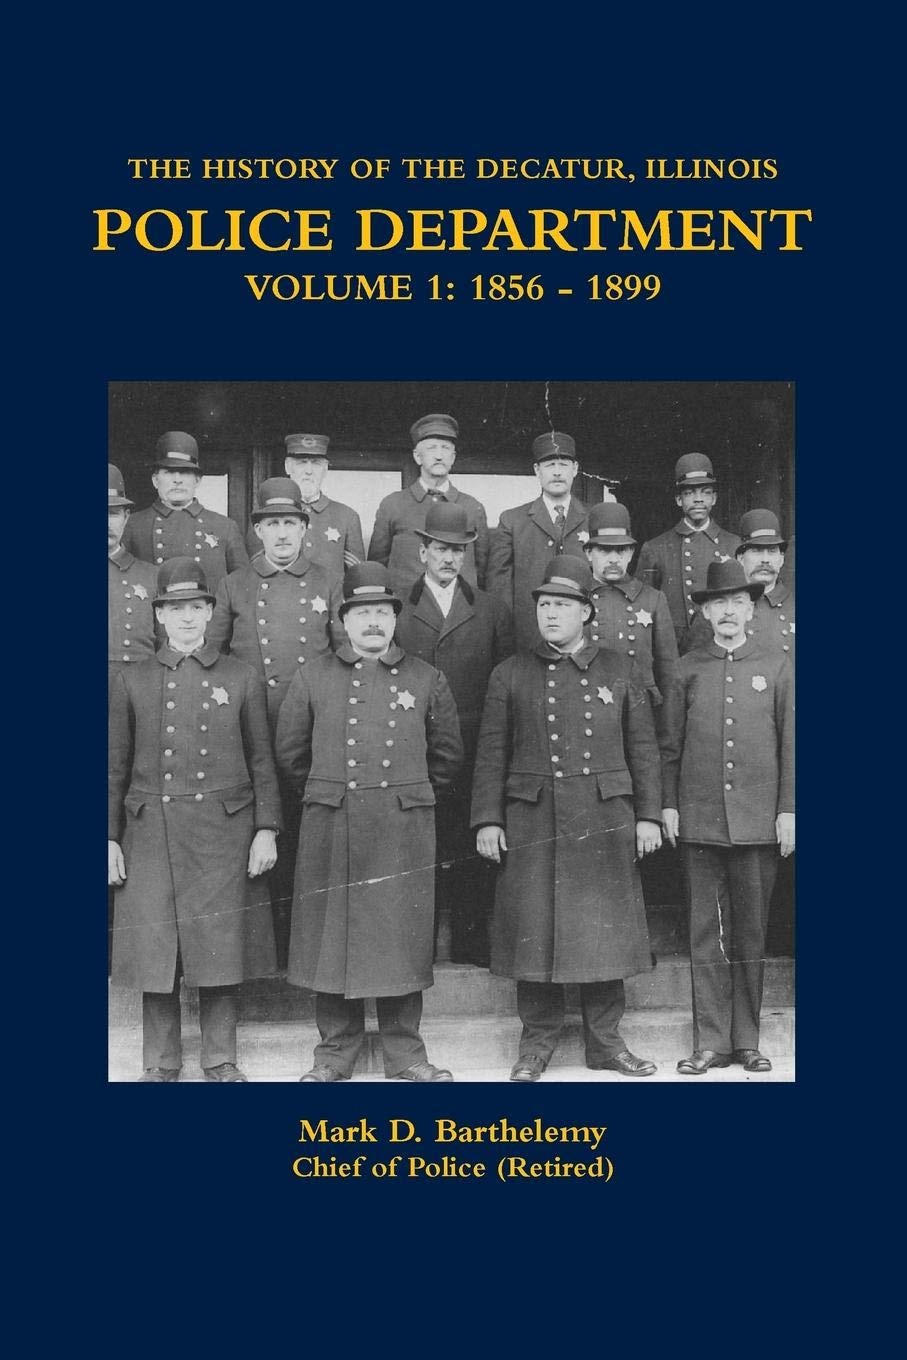 THE HISTORY OF THE DECATUR, ILLINOIS POLICE DEPARTMENT